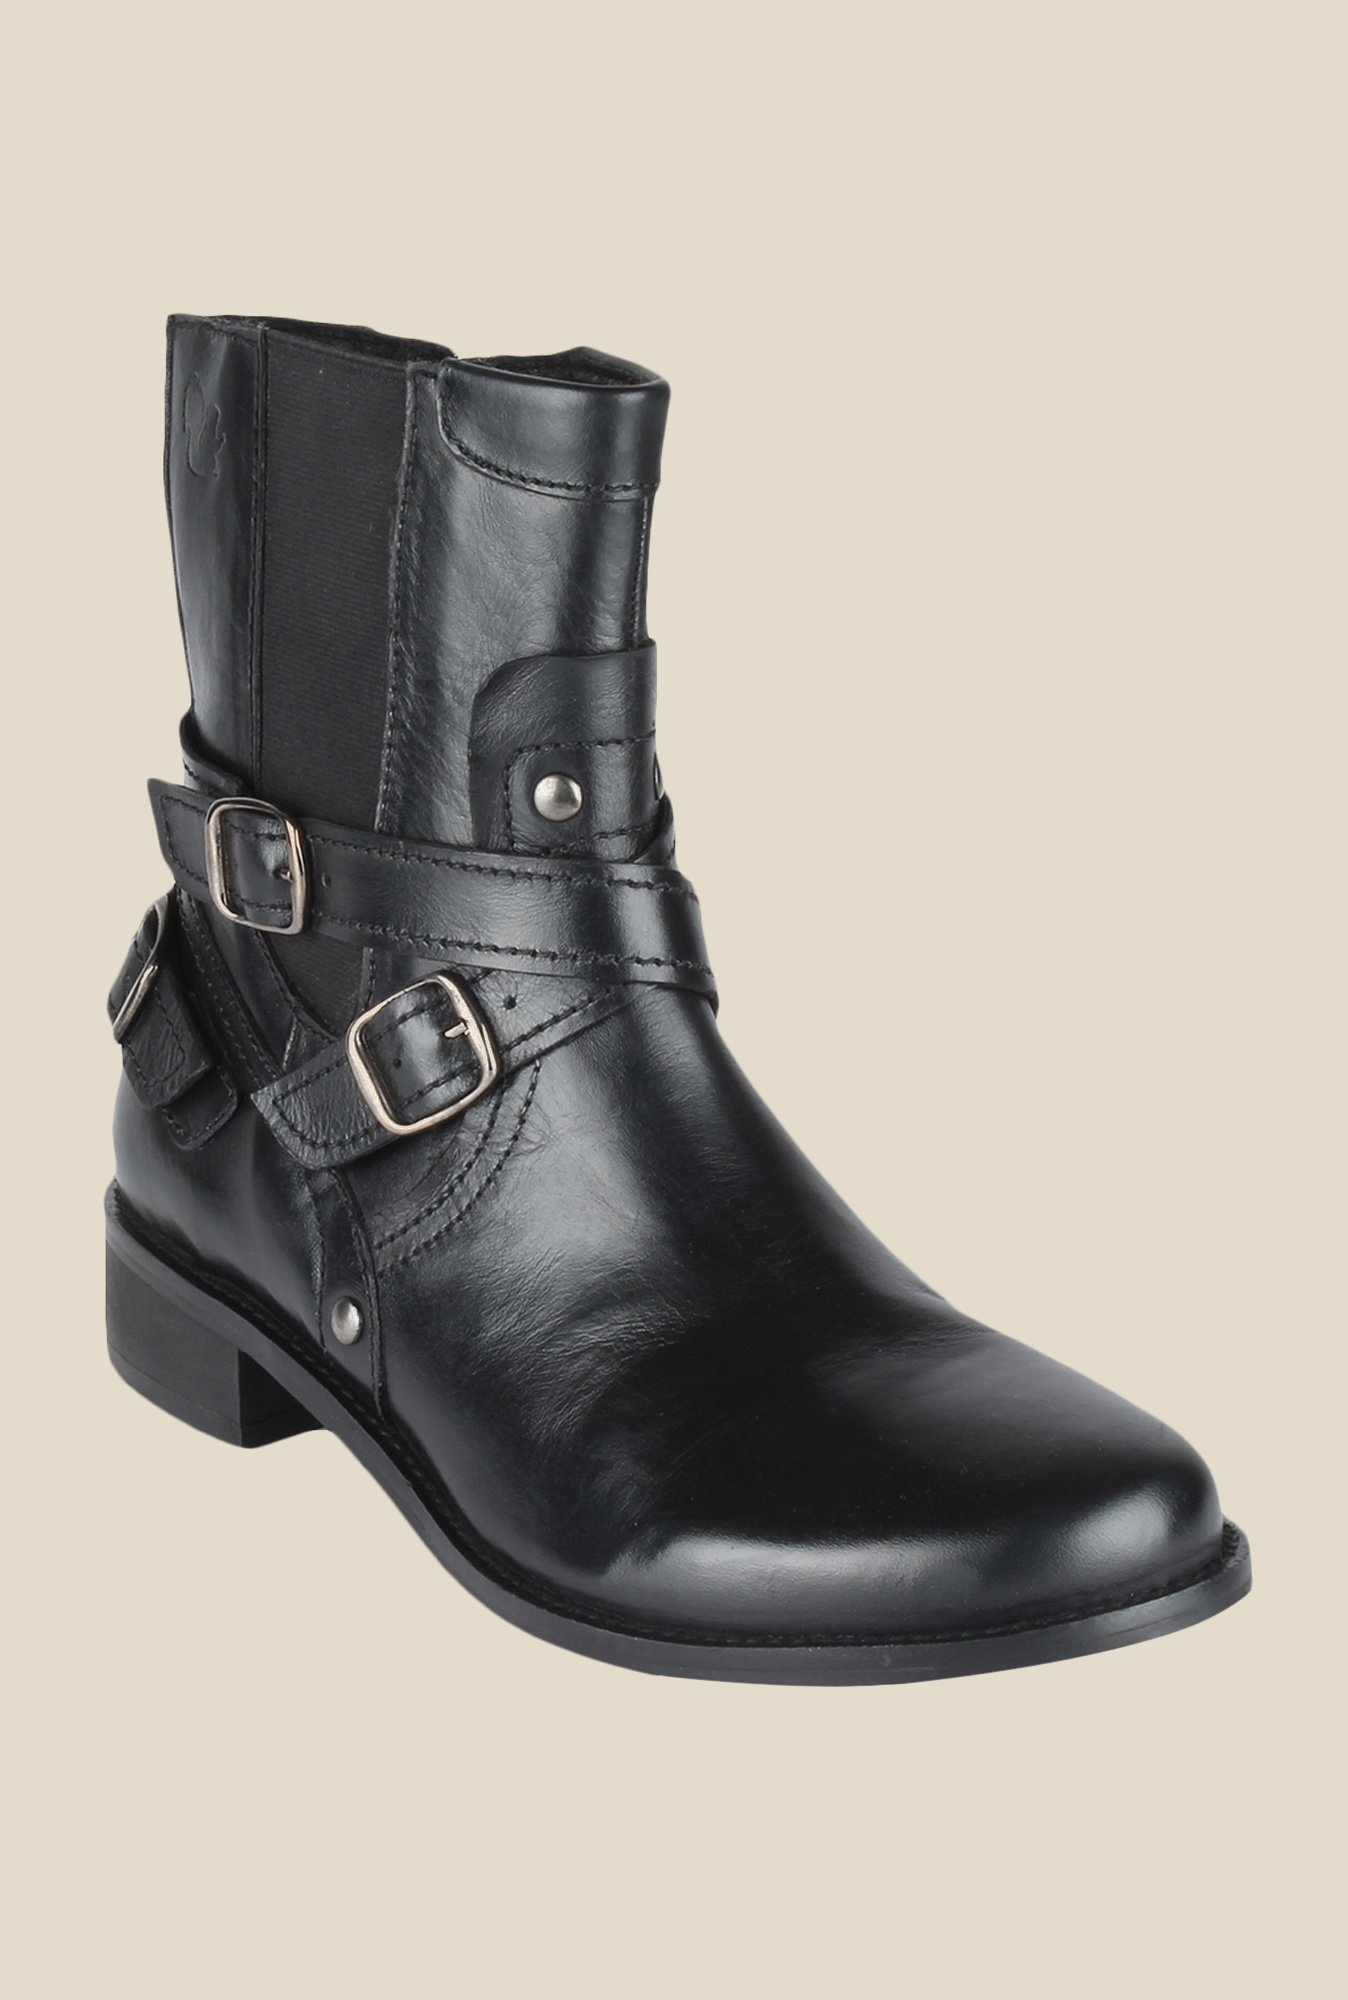 Salt 'n' Pepper Criminal Black Casual Boots